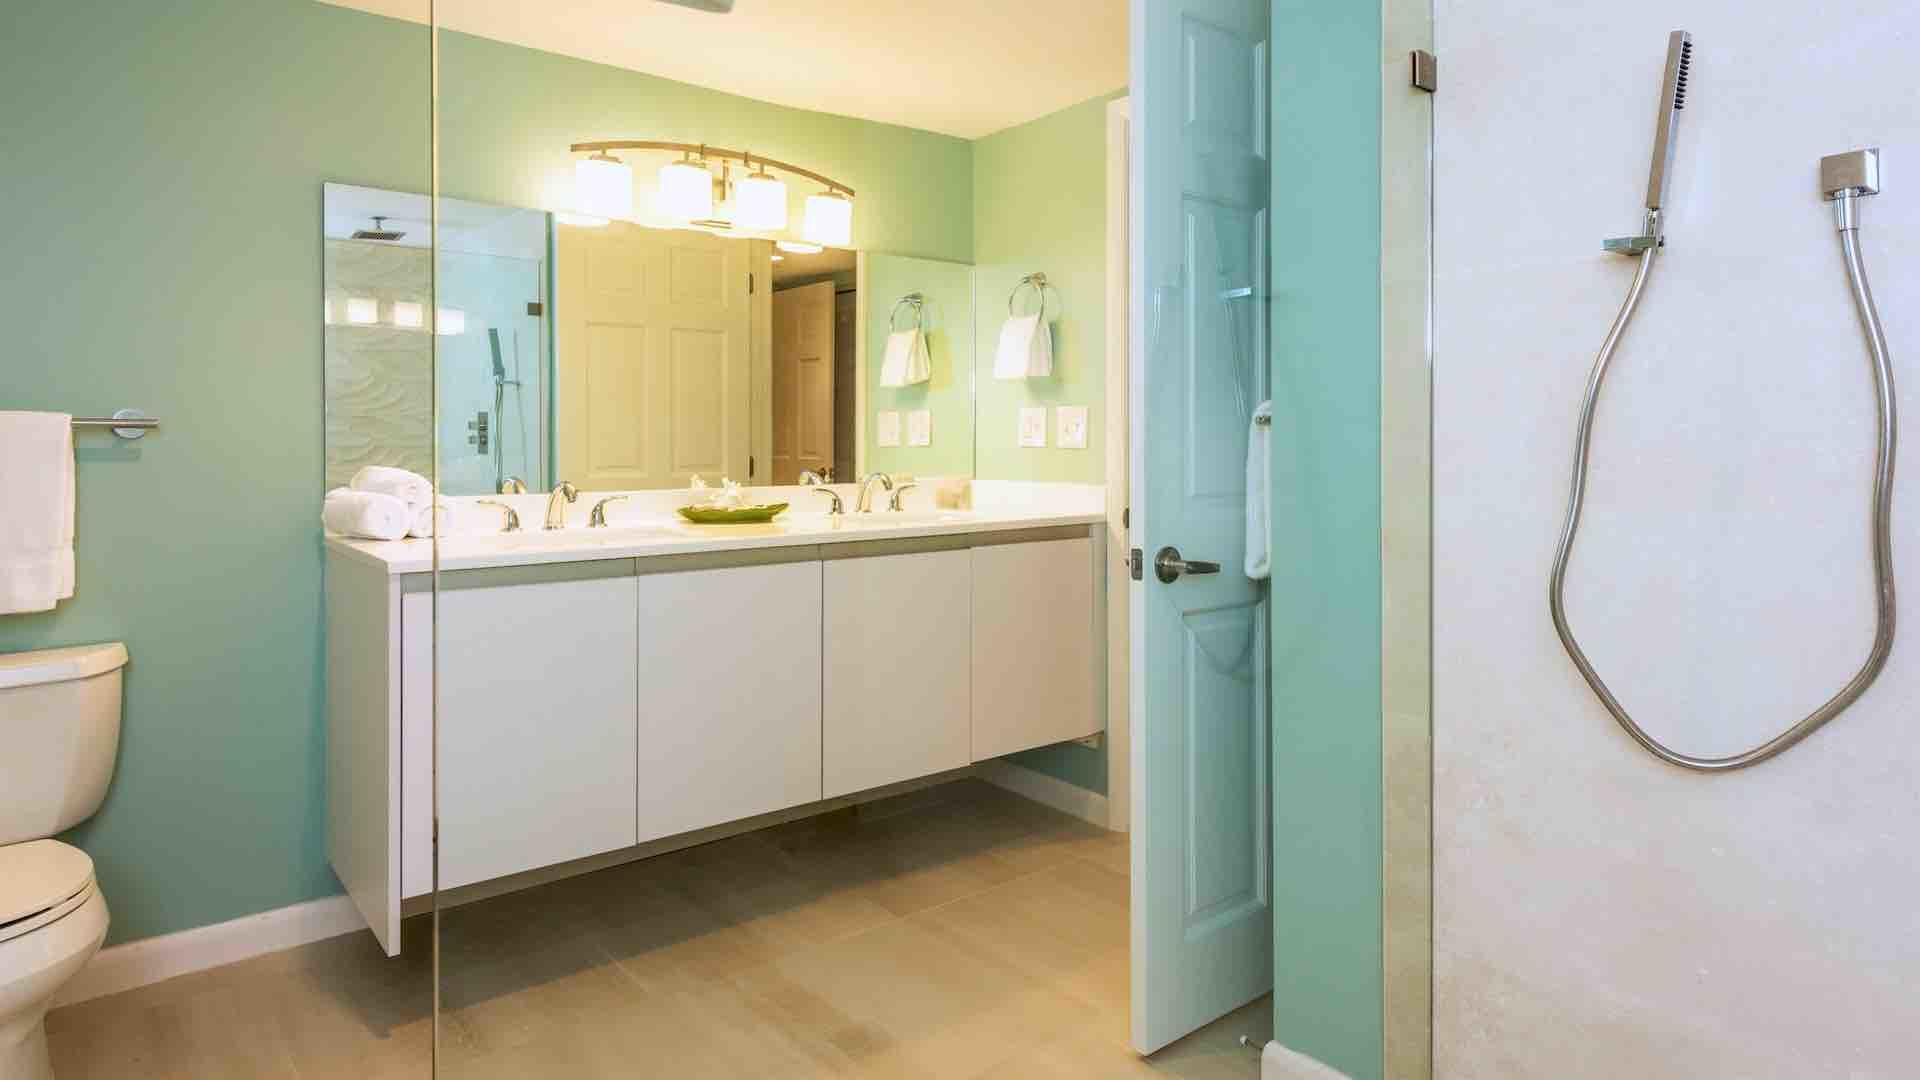 The master bathroom also has a large walk-in glass shower...